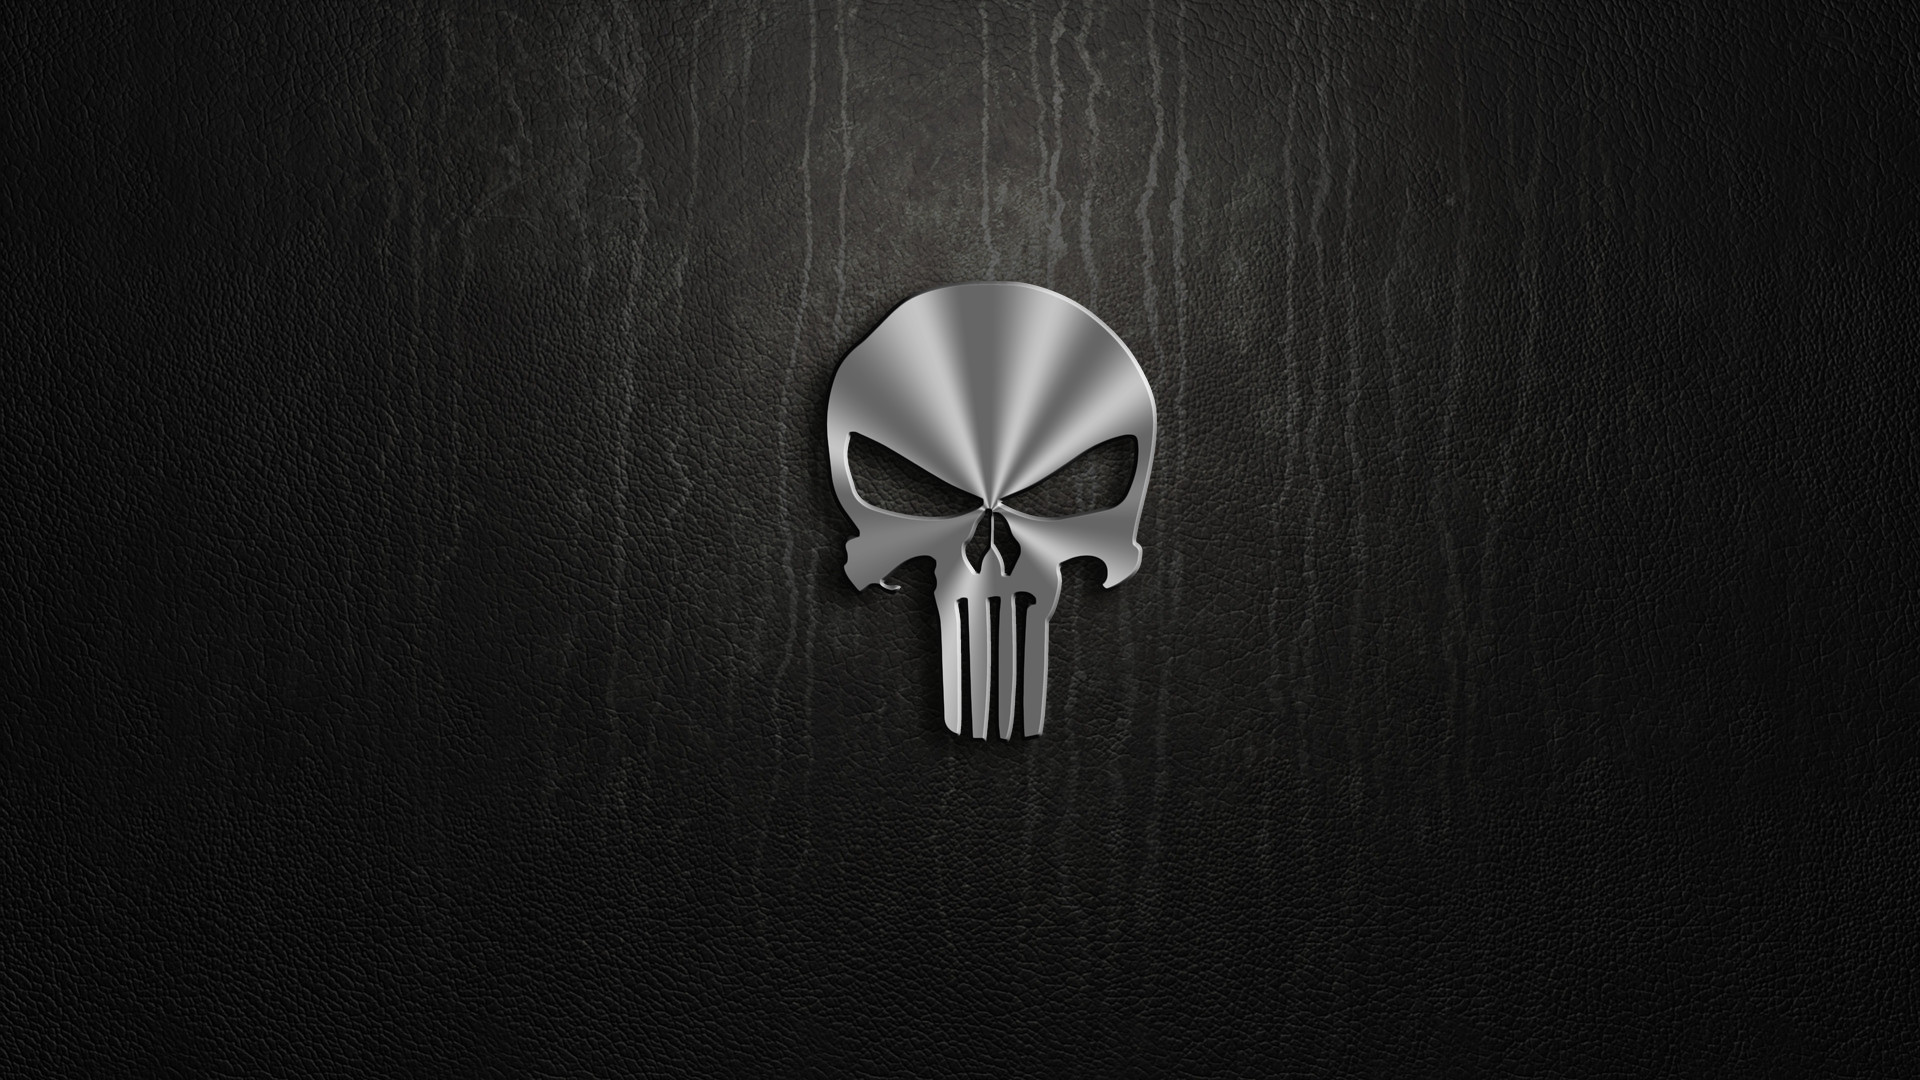 1920x1080 Punisher Wallpaper